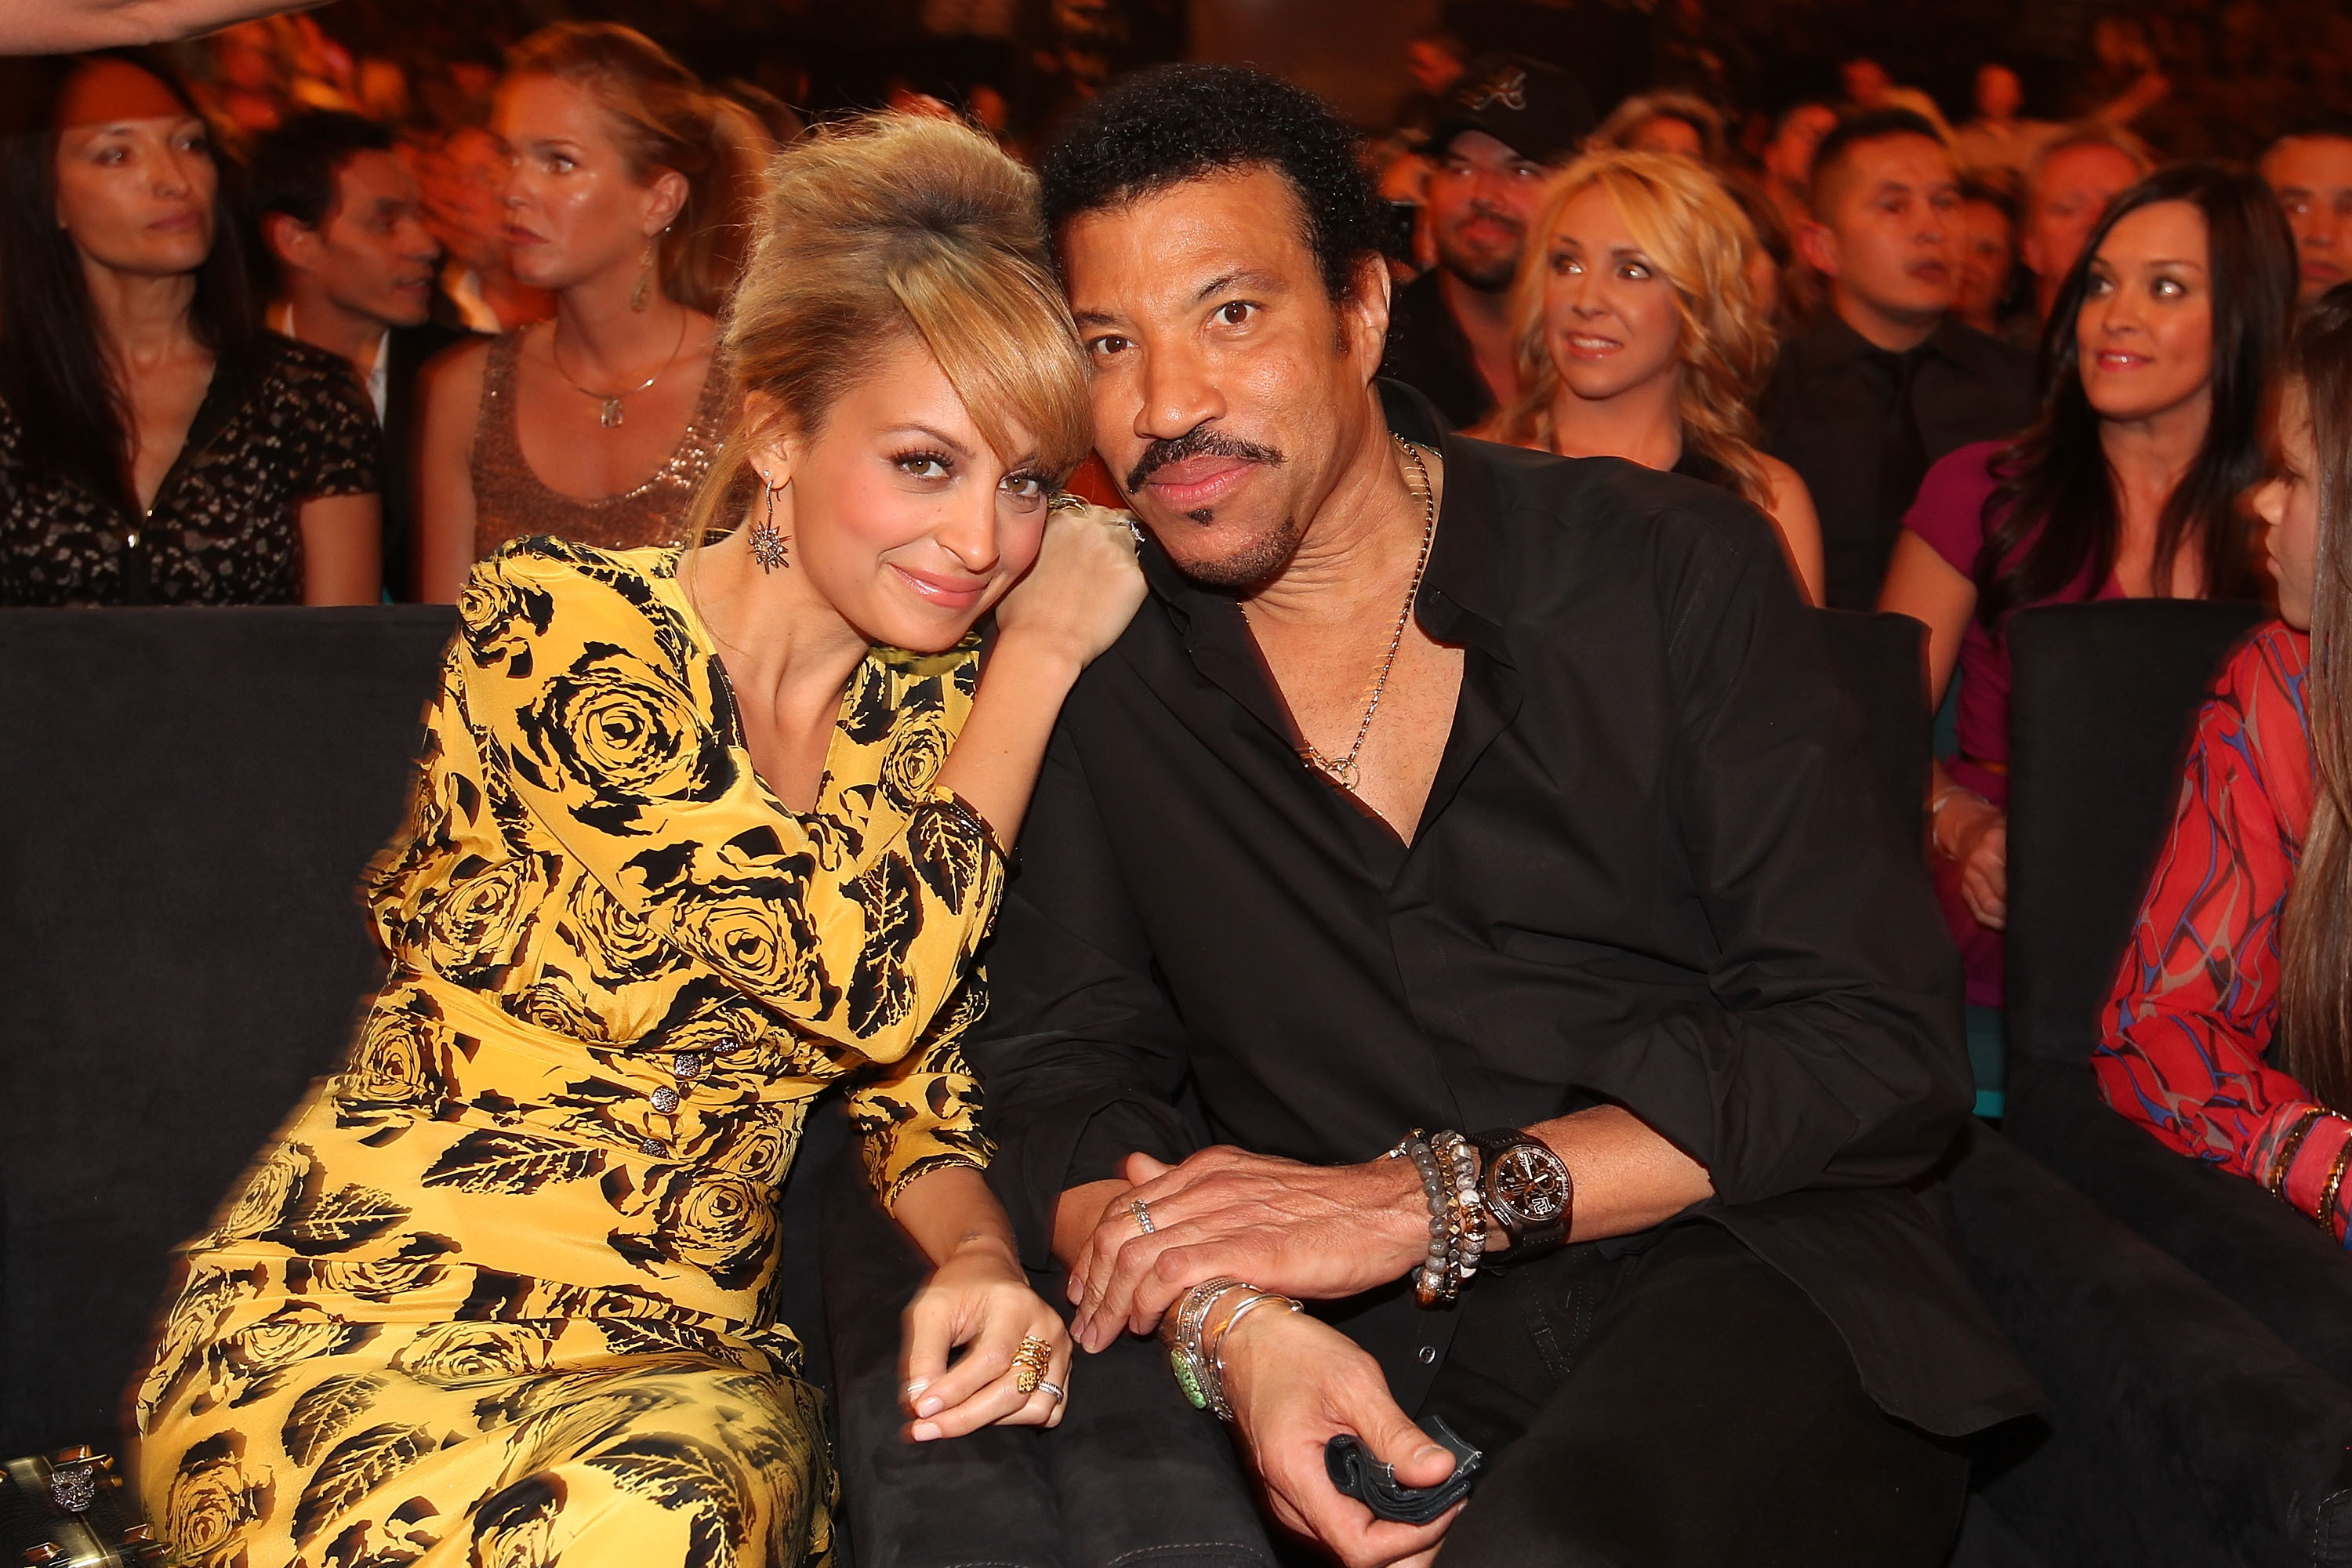 Nicole Richie and singer Lionel Richie attend Lionel Richie and Friends in Concert presented by ACM held at the MGM Grand Garden Arena in Las Vegas on April 2, 2012.